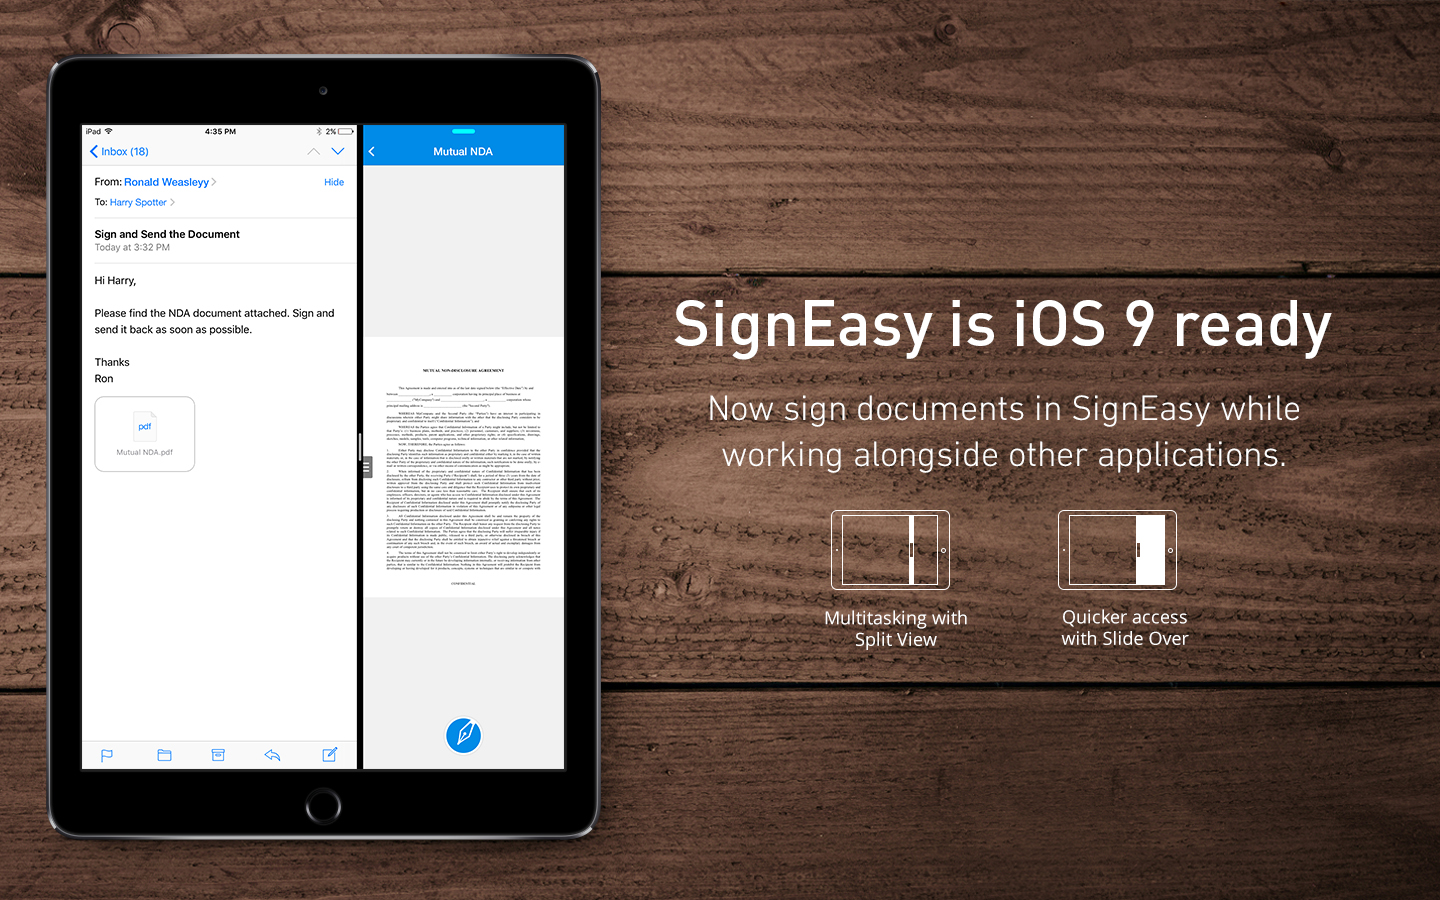 iOS 9 Features that will Redefine your SignEasy Experience